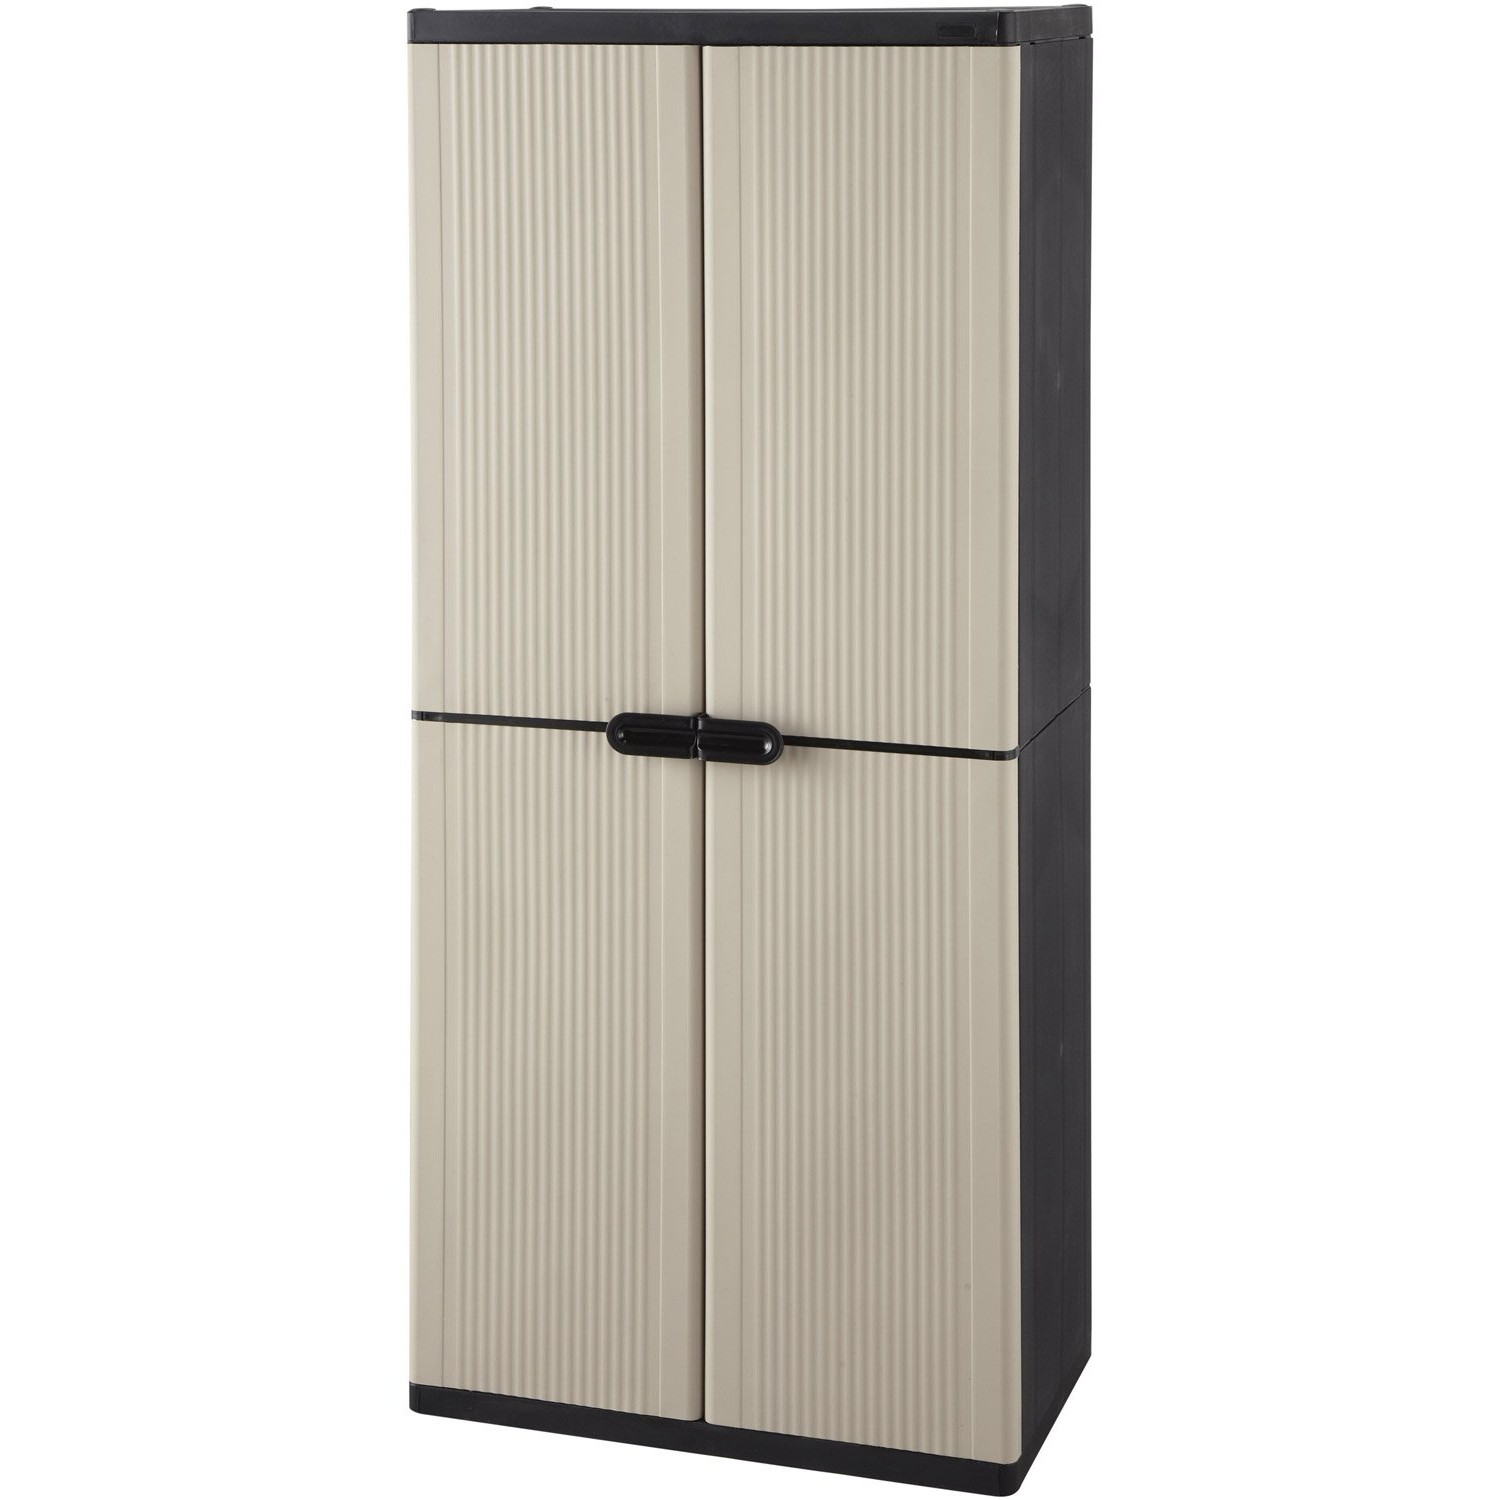 armoire plastique exterieur leroy merlin maison design. Black Bedroom Furniture Sets. Home Design Ideas